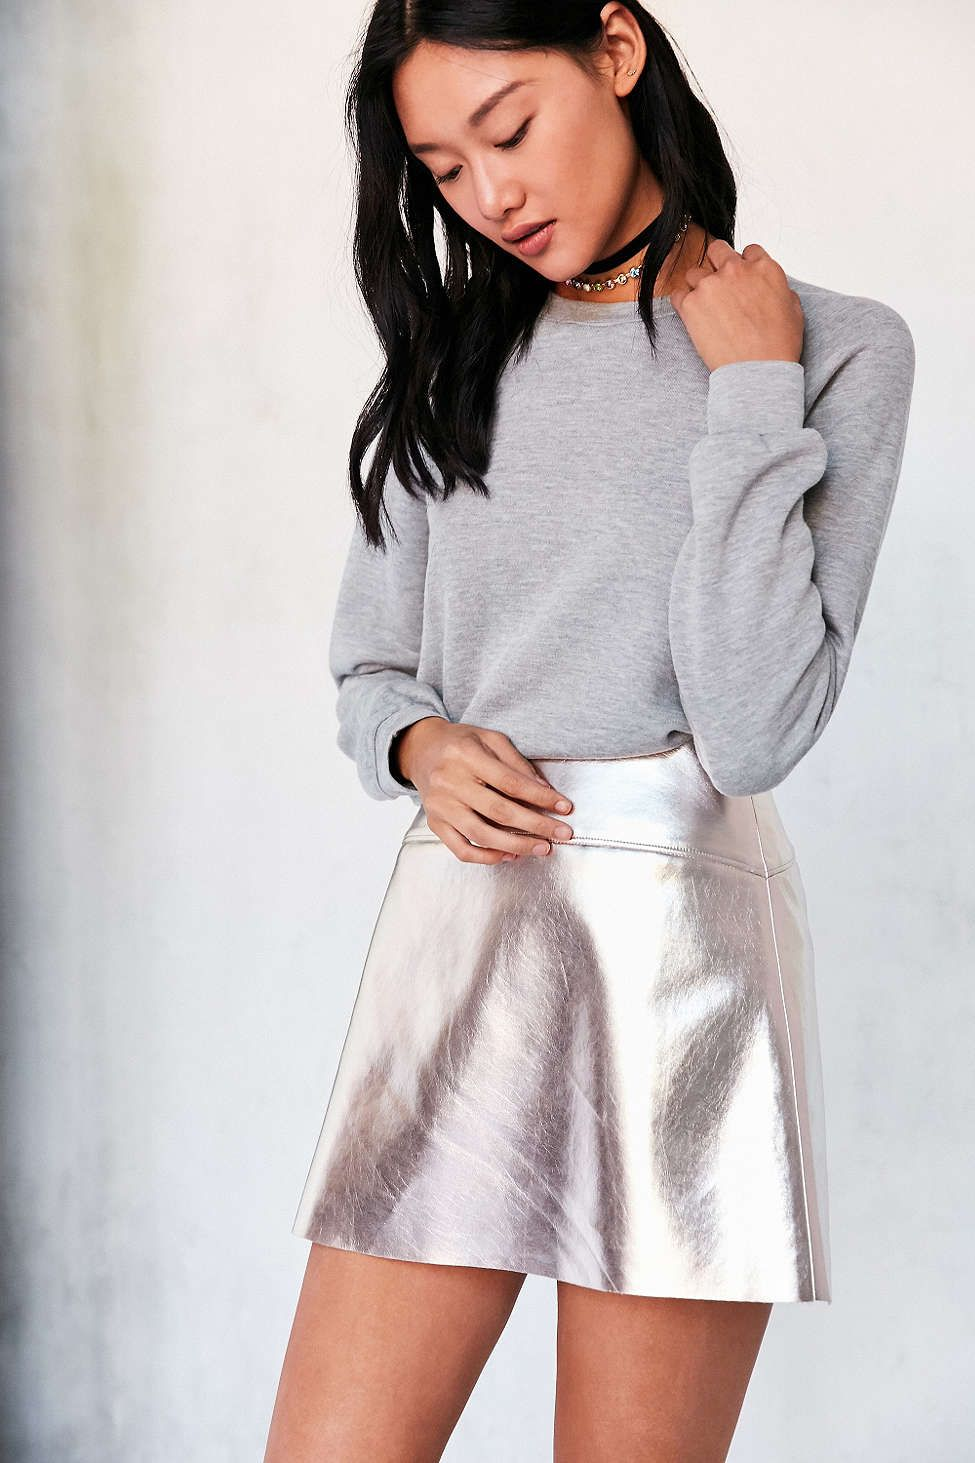 e4c89e9ac1 Silence + Noise Rose Gold Vegan Leather Mini Skirt - Urban Outfitters